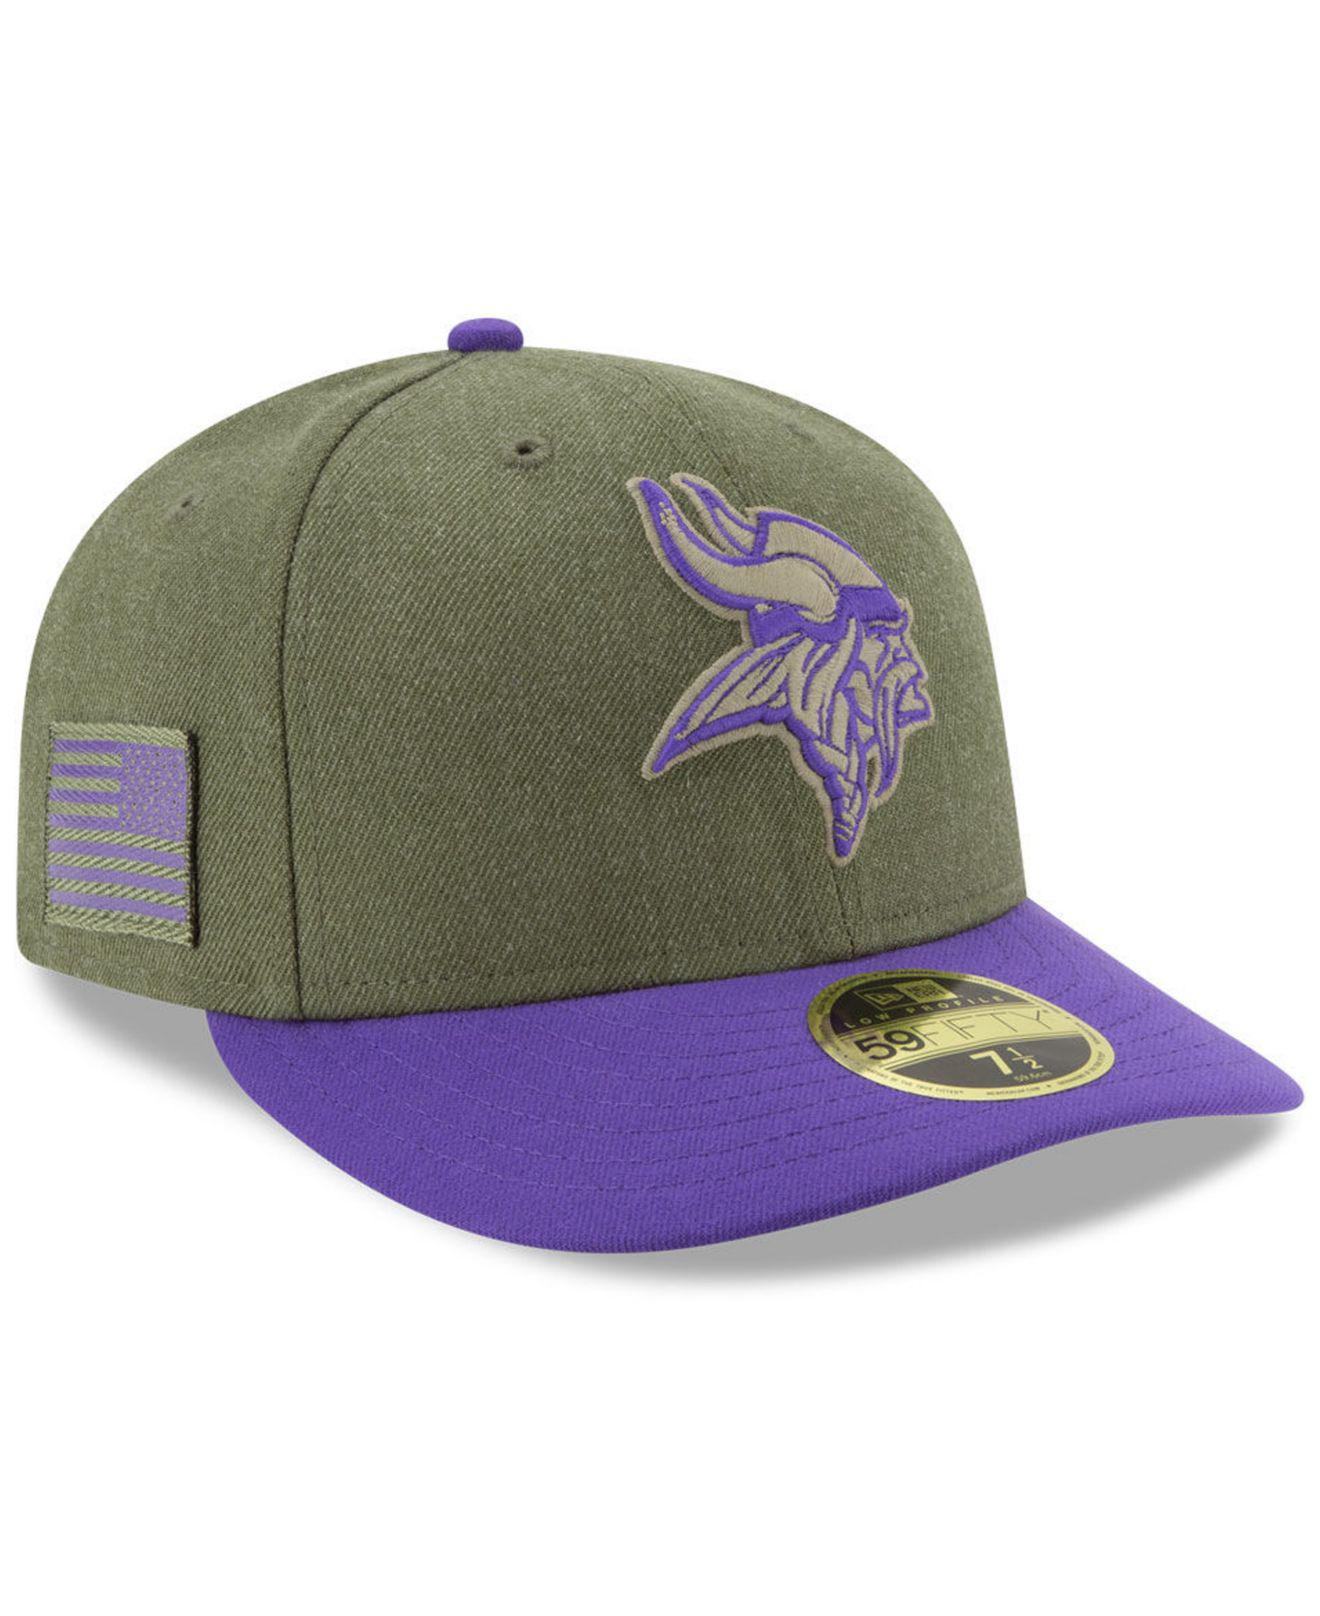 KTZ. Men s Green Minnesota Vikings Salute To Service Low Profile 59fifty Fitted  Cap 2018 059a6b09b